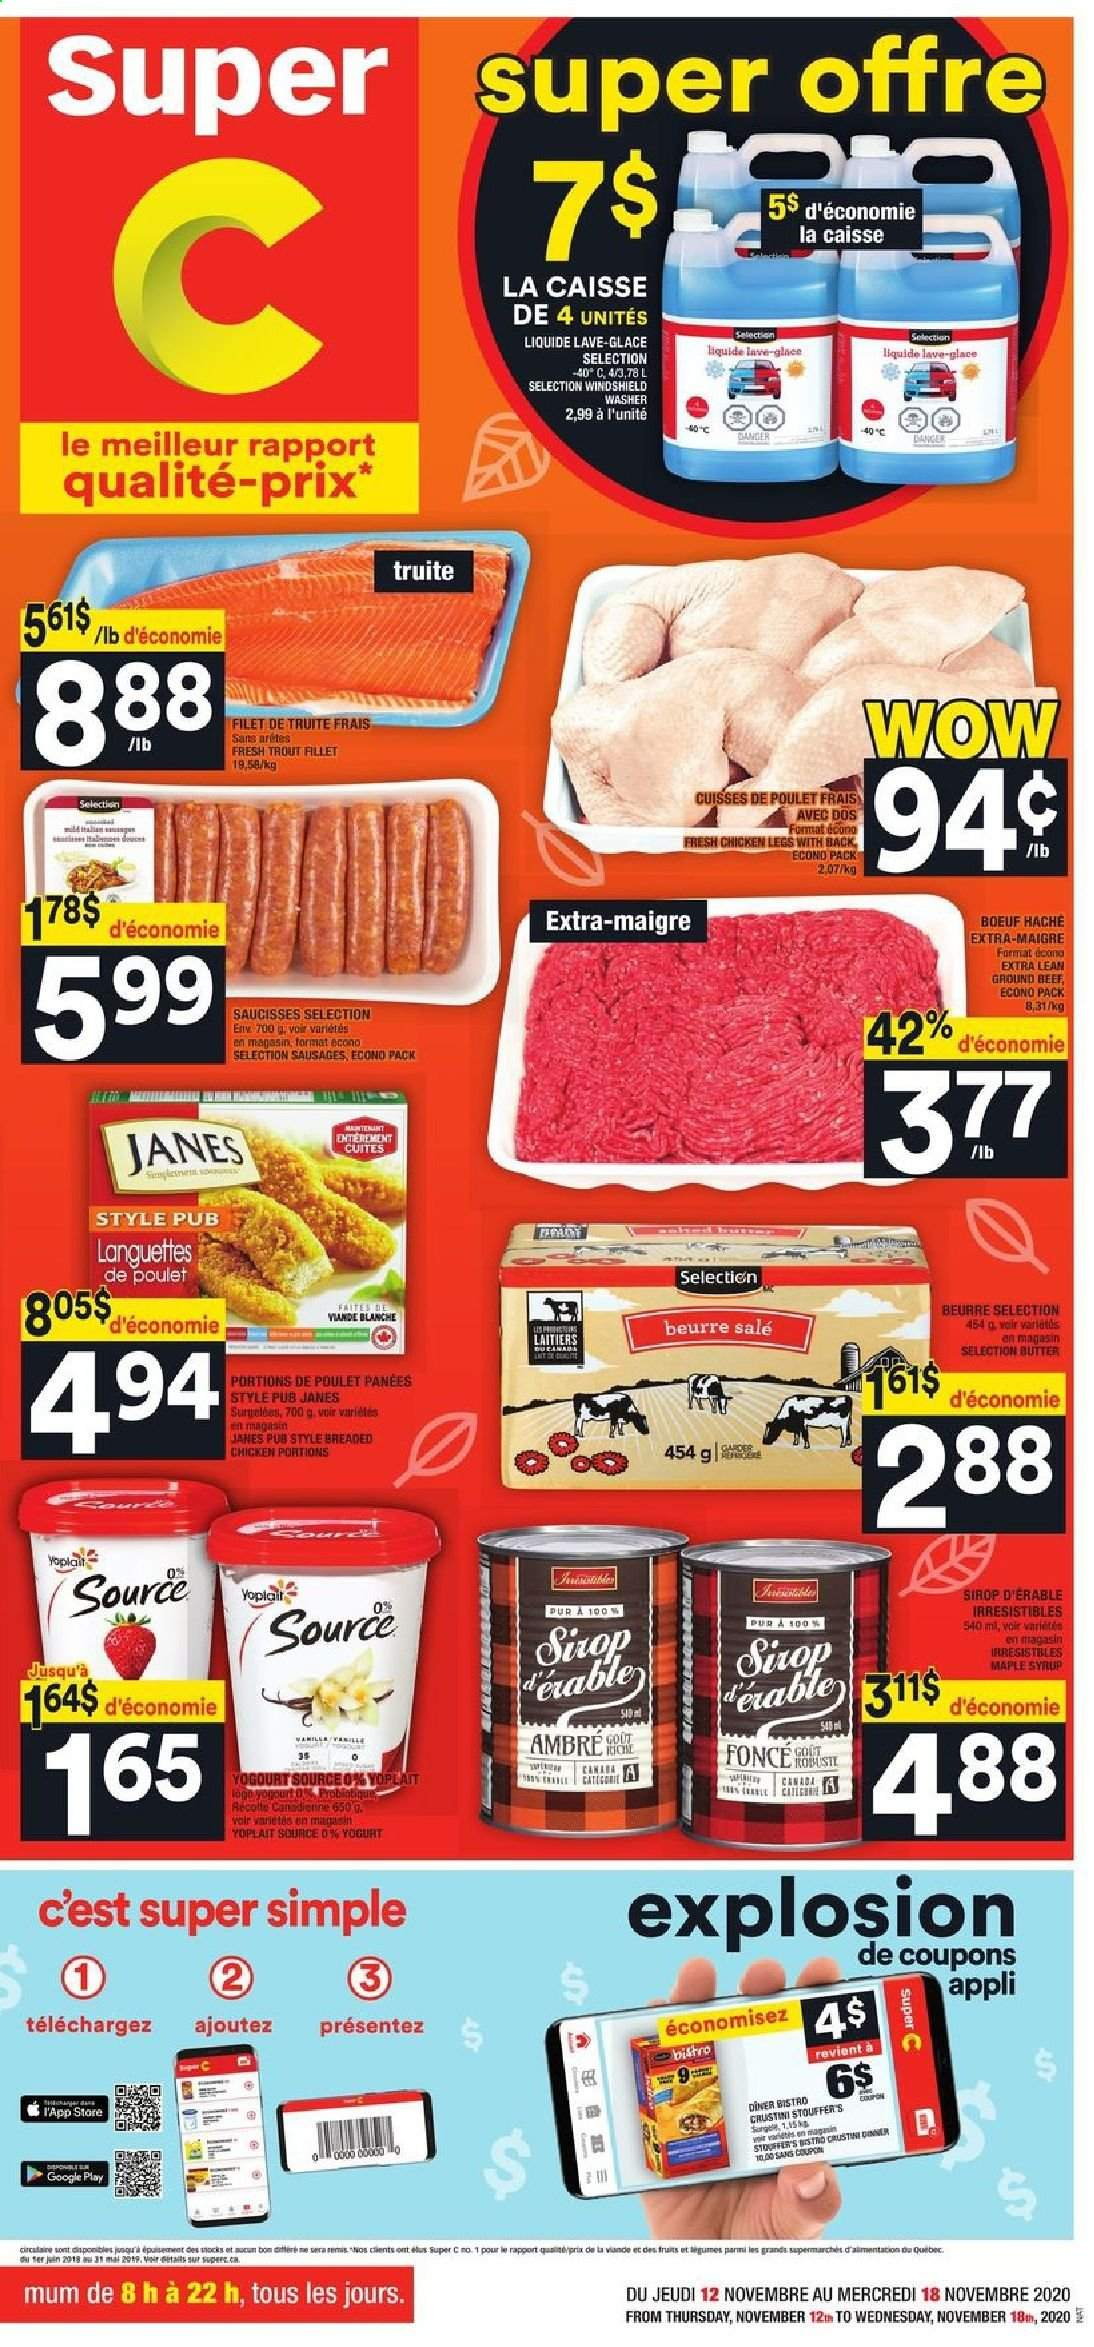 Super C Flyer - November 12, 2020 - November 18, 2020 - Sales products - beef meat, butter, ground beef, maple syrup, sausages, trout, chicken, chicken legs, syrup. Page 1.